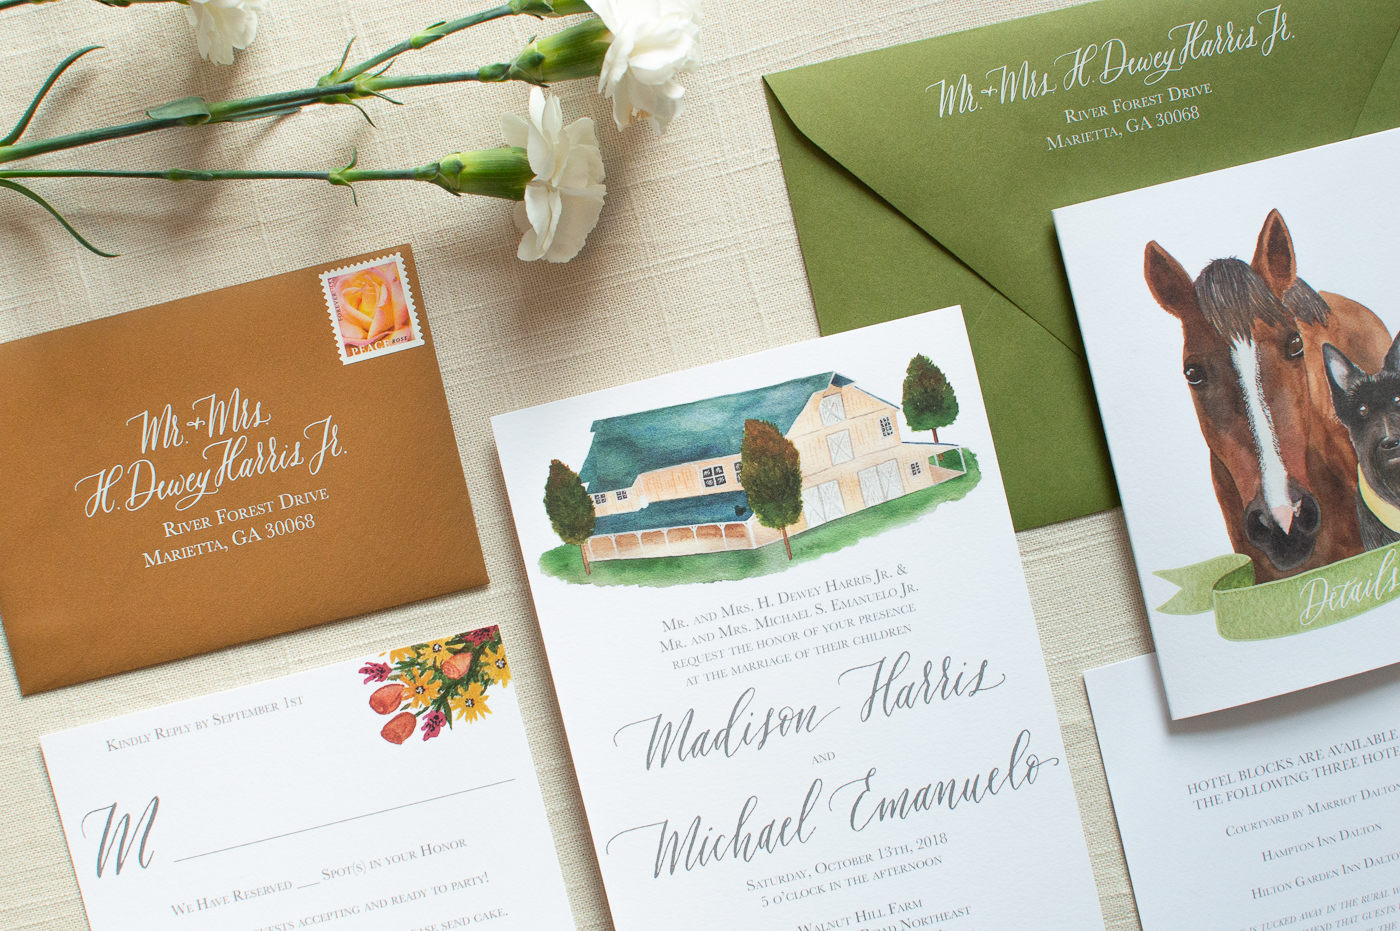 Our customized RSVP cards allowed us to fill in the number of guests each invitation included with each invitation